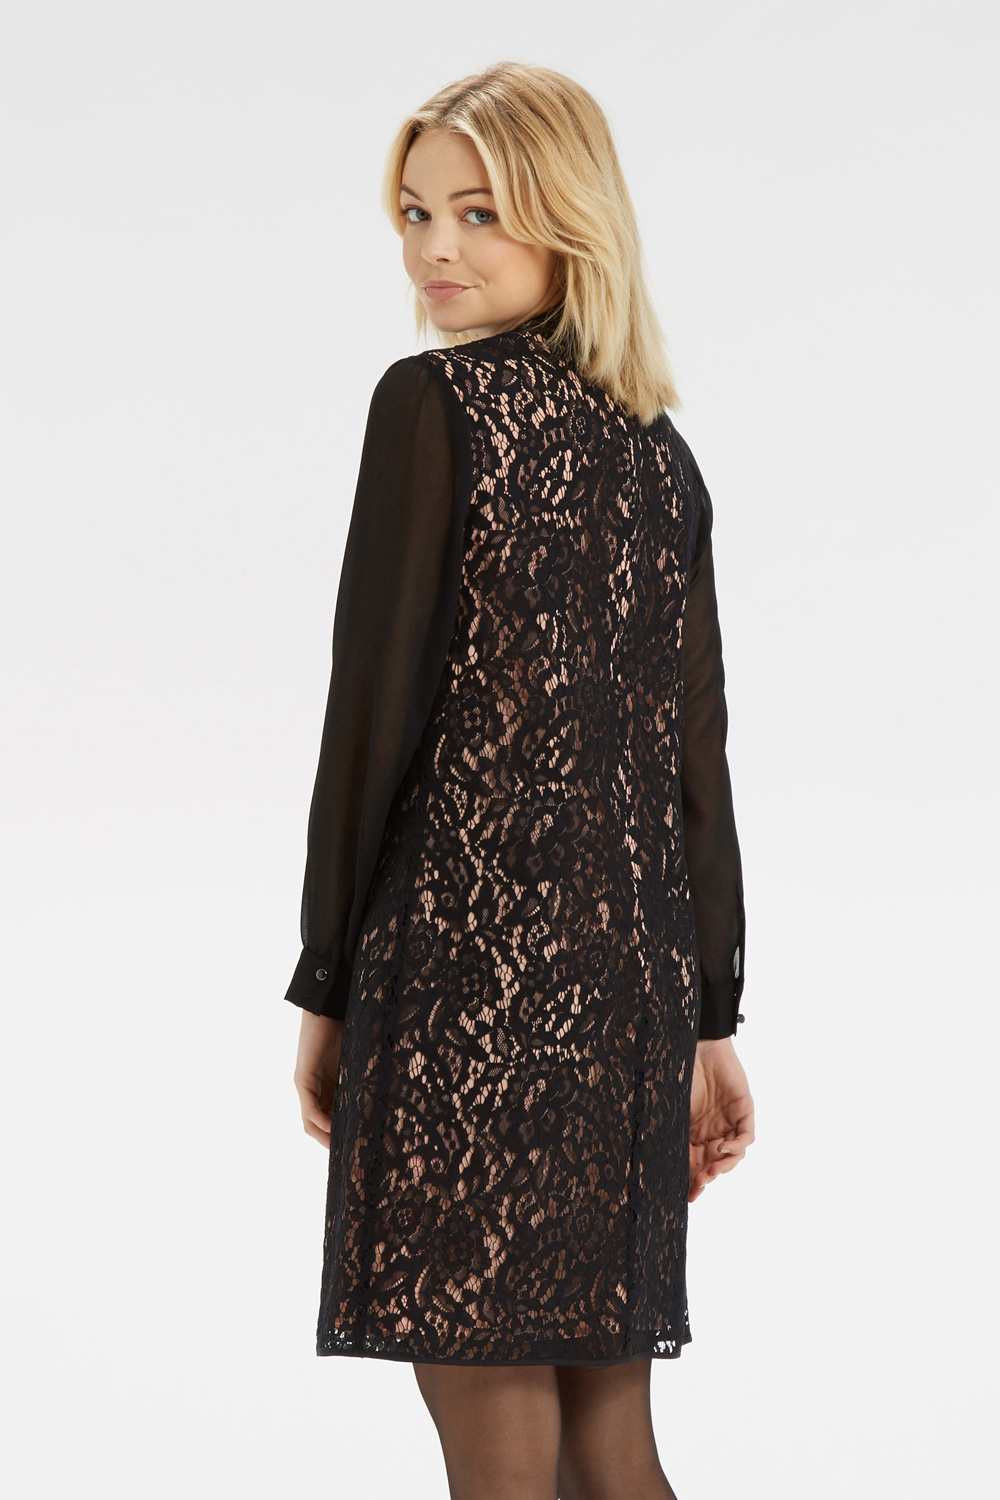 4719c7477945 Oasis Lace Chiffon Sleeve Dress in Black - Lyst